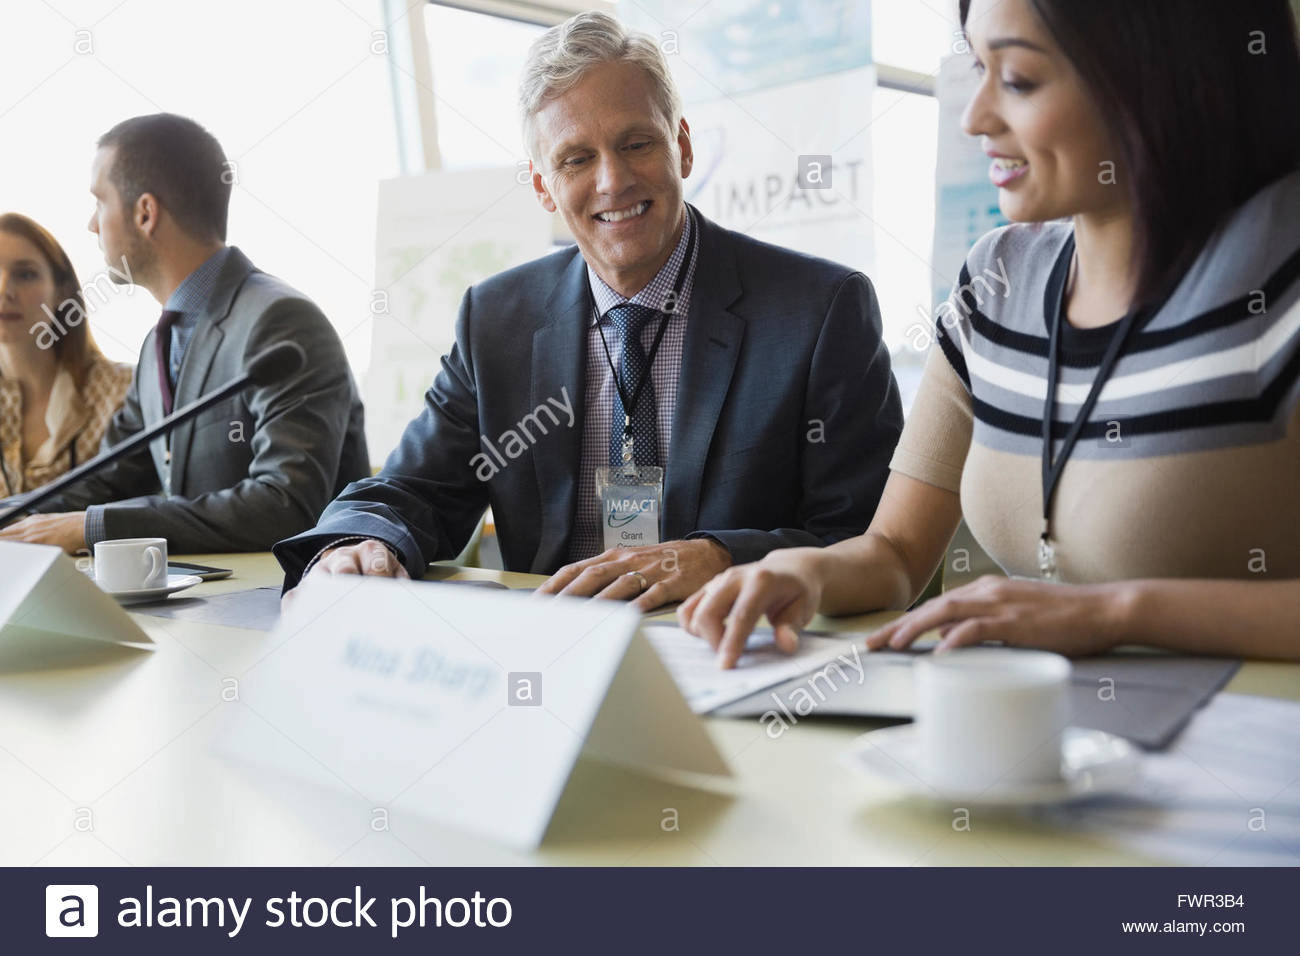 Business people discussing during conference - Stock Image